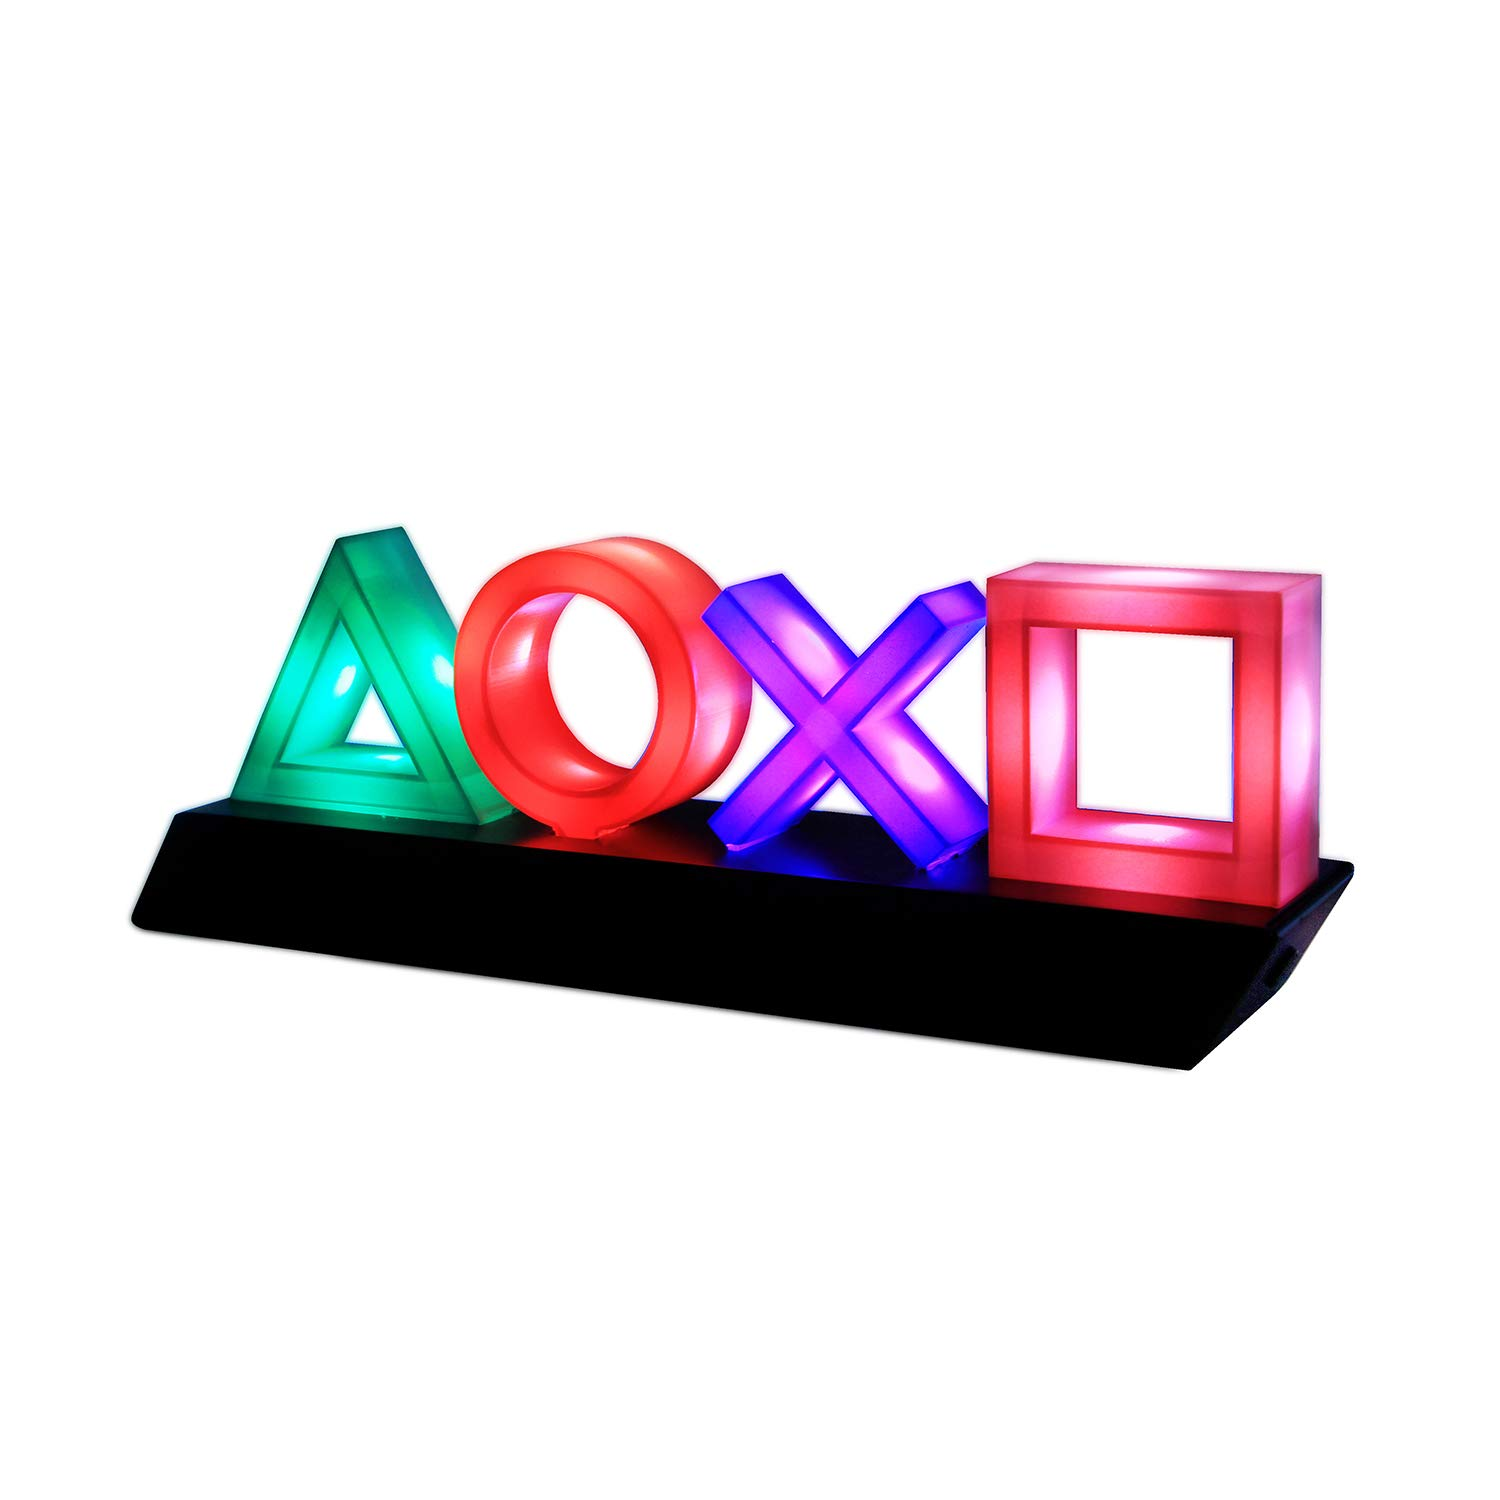 Avis lampe playstation icons lights Paladone